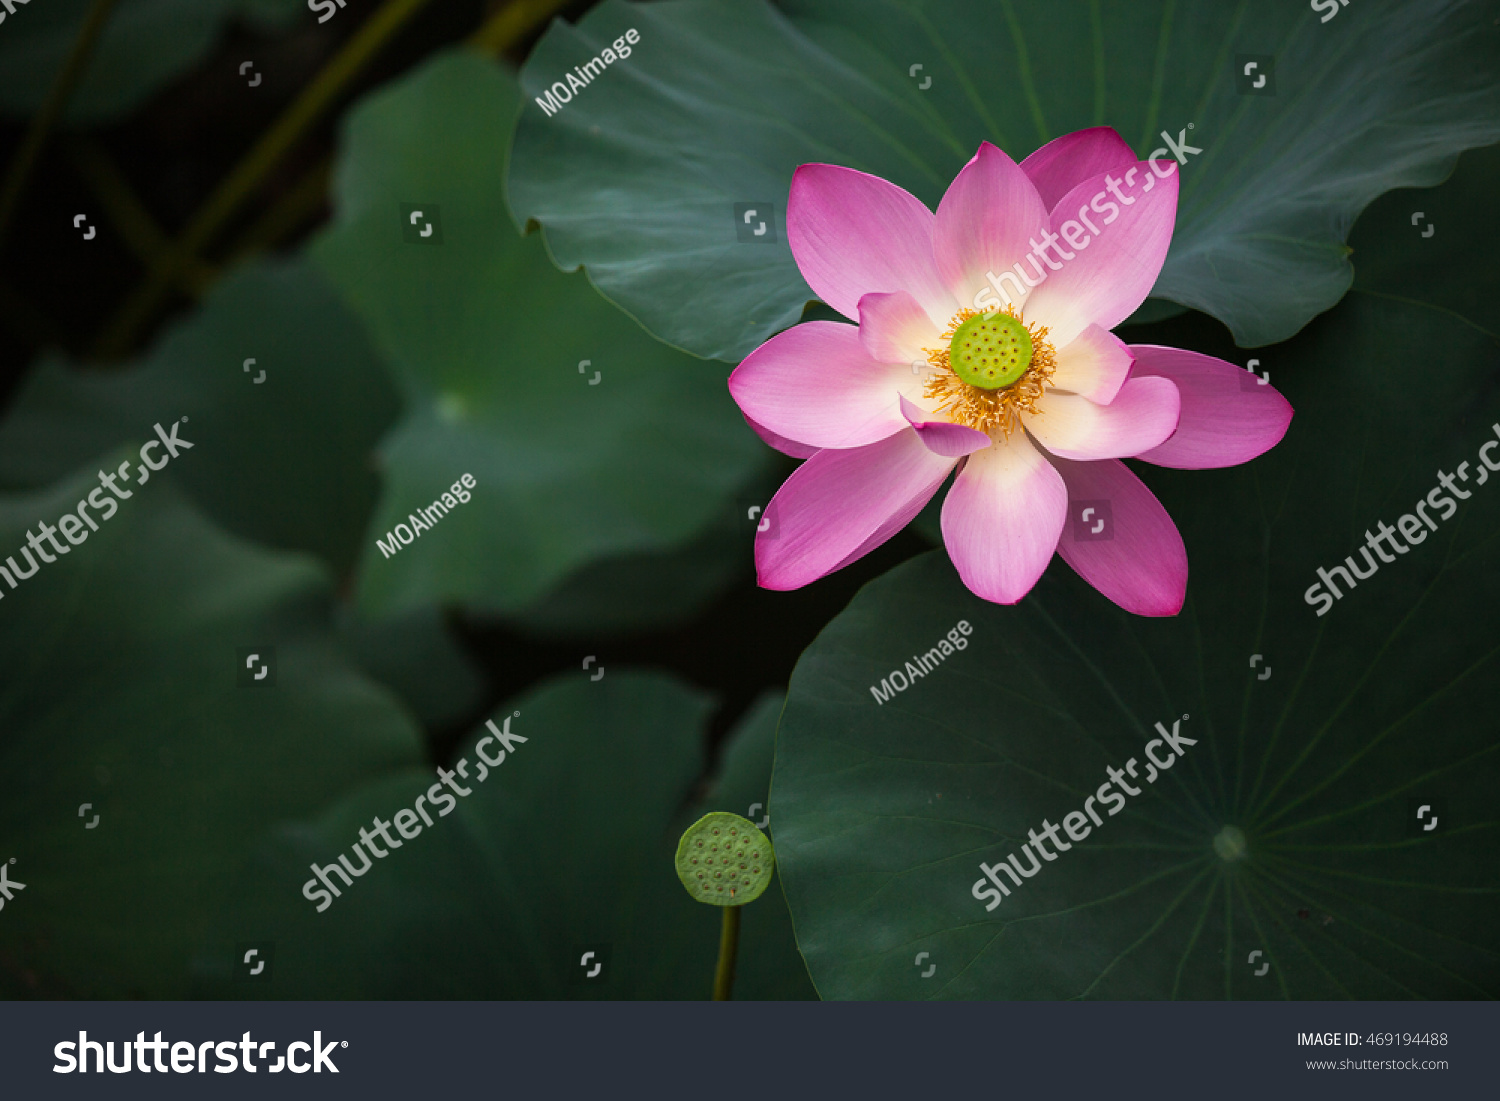 Royalty-free This beautiful lotus flower is… #469194488 Stock Photo ...